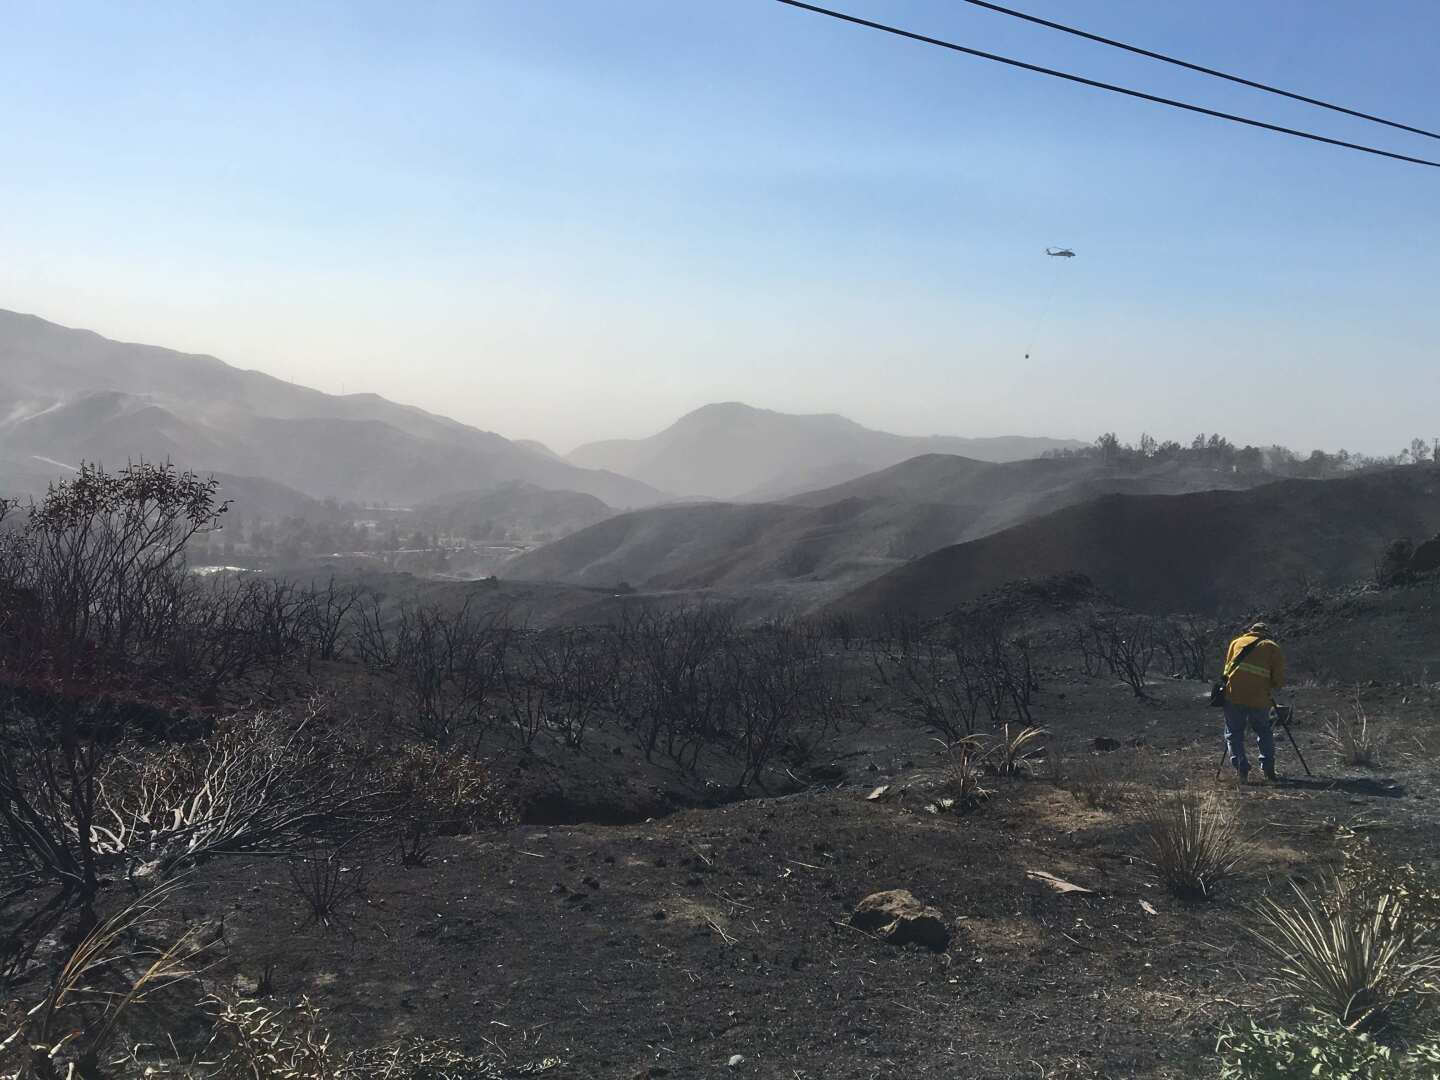 A camerman (Dennis Nishi) captures the aftermath of the Woolsey Fire. Shot by Tori Edgar.